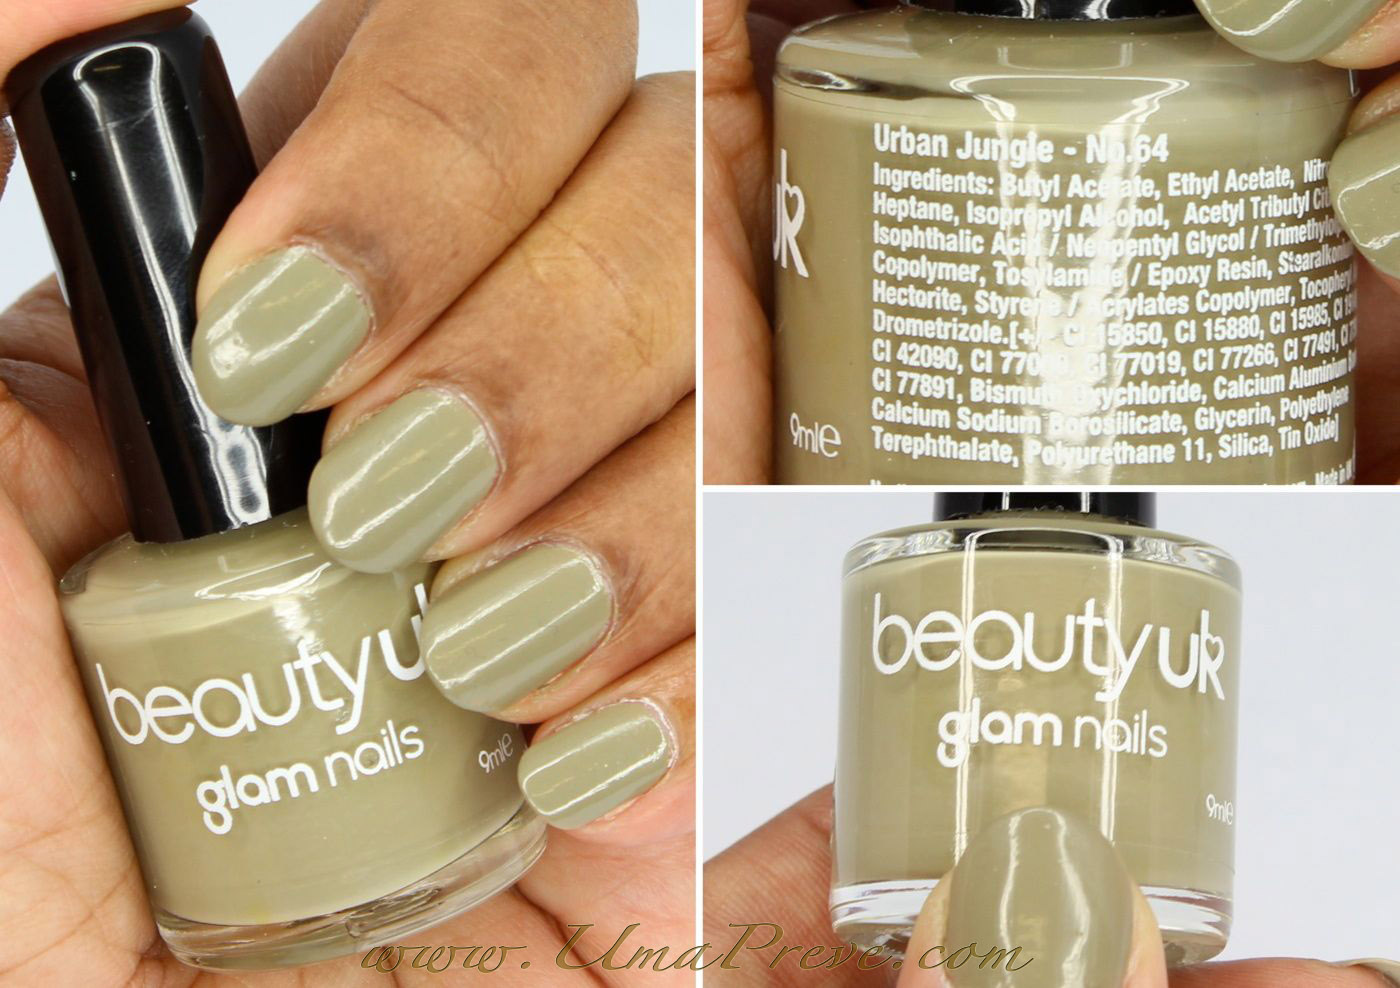 It is creme finish nail polish